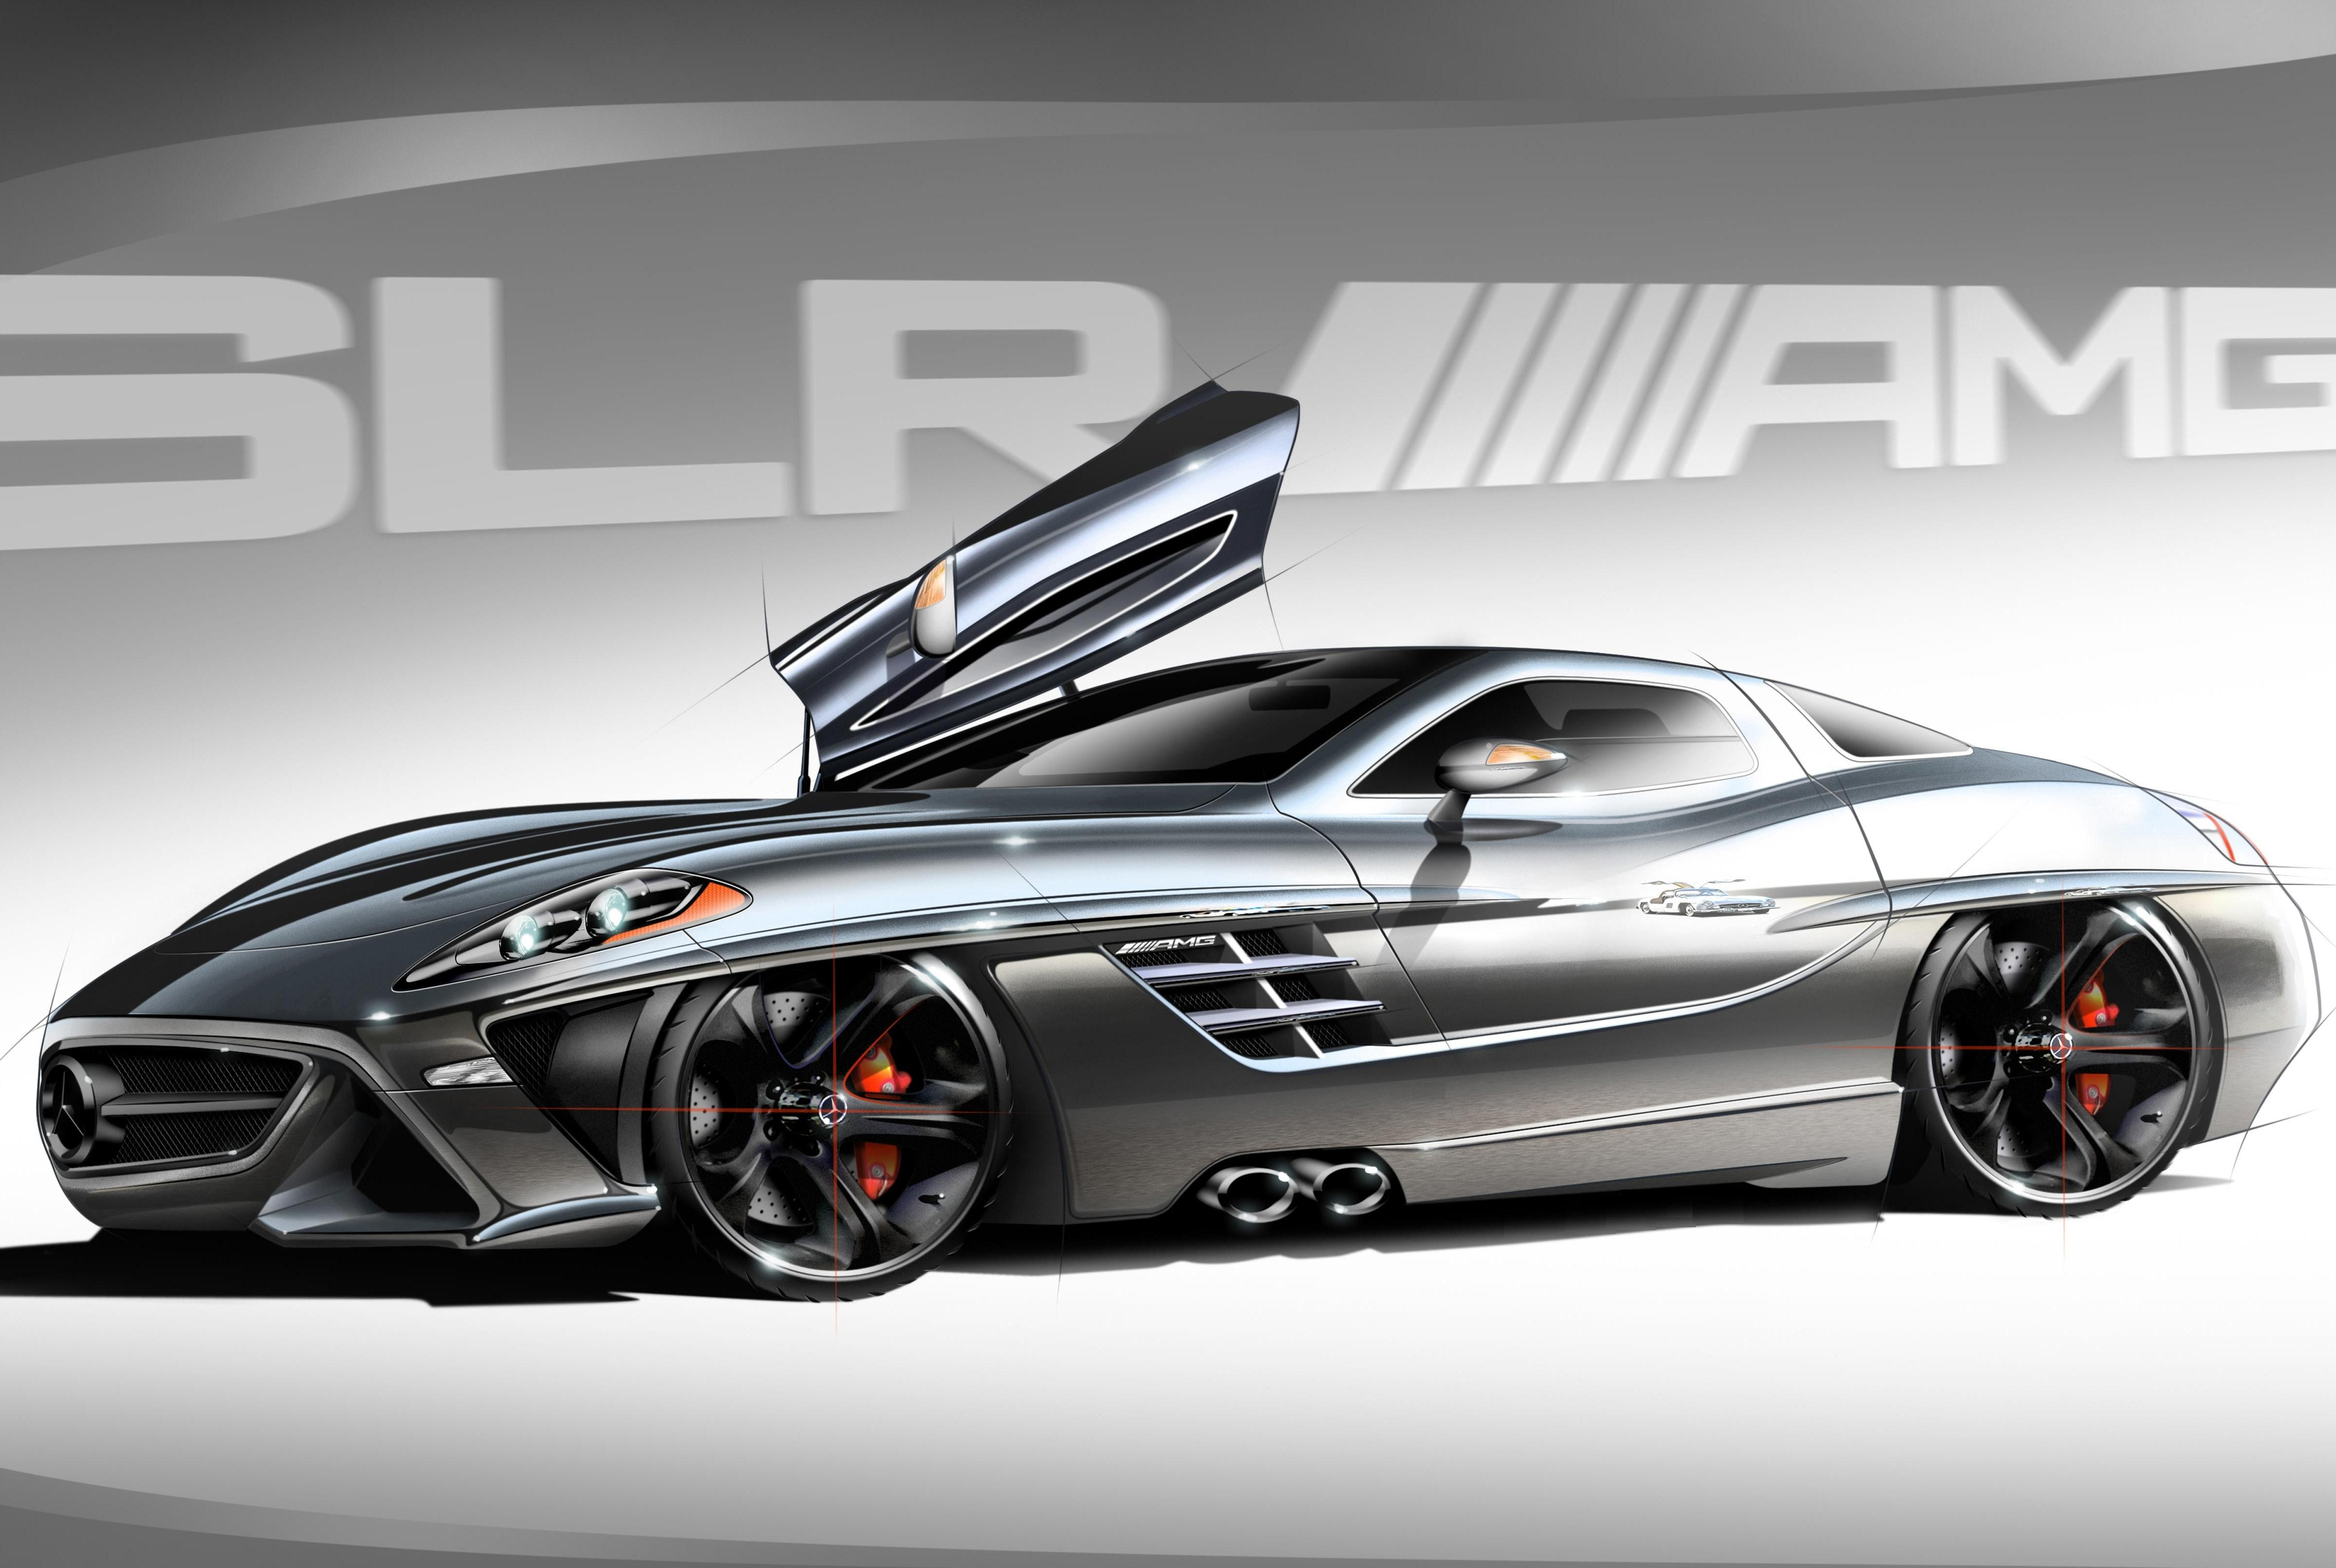 hd desktop wallpaper cars   wwwwallpapers in hdcom 4777x3207